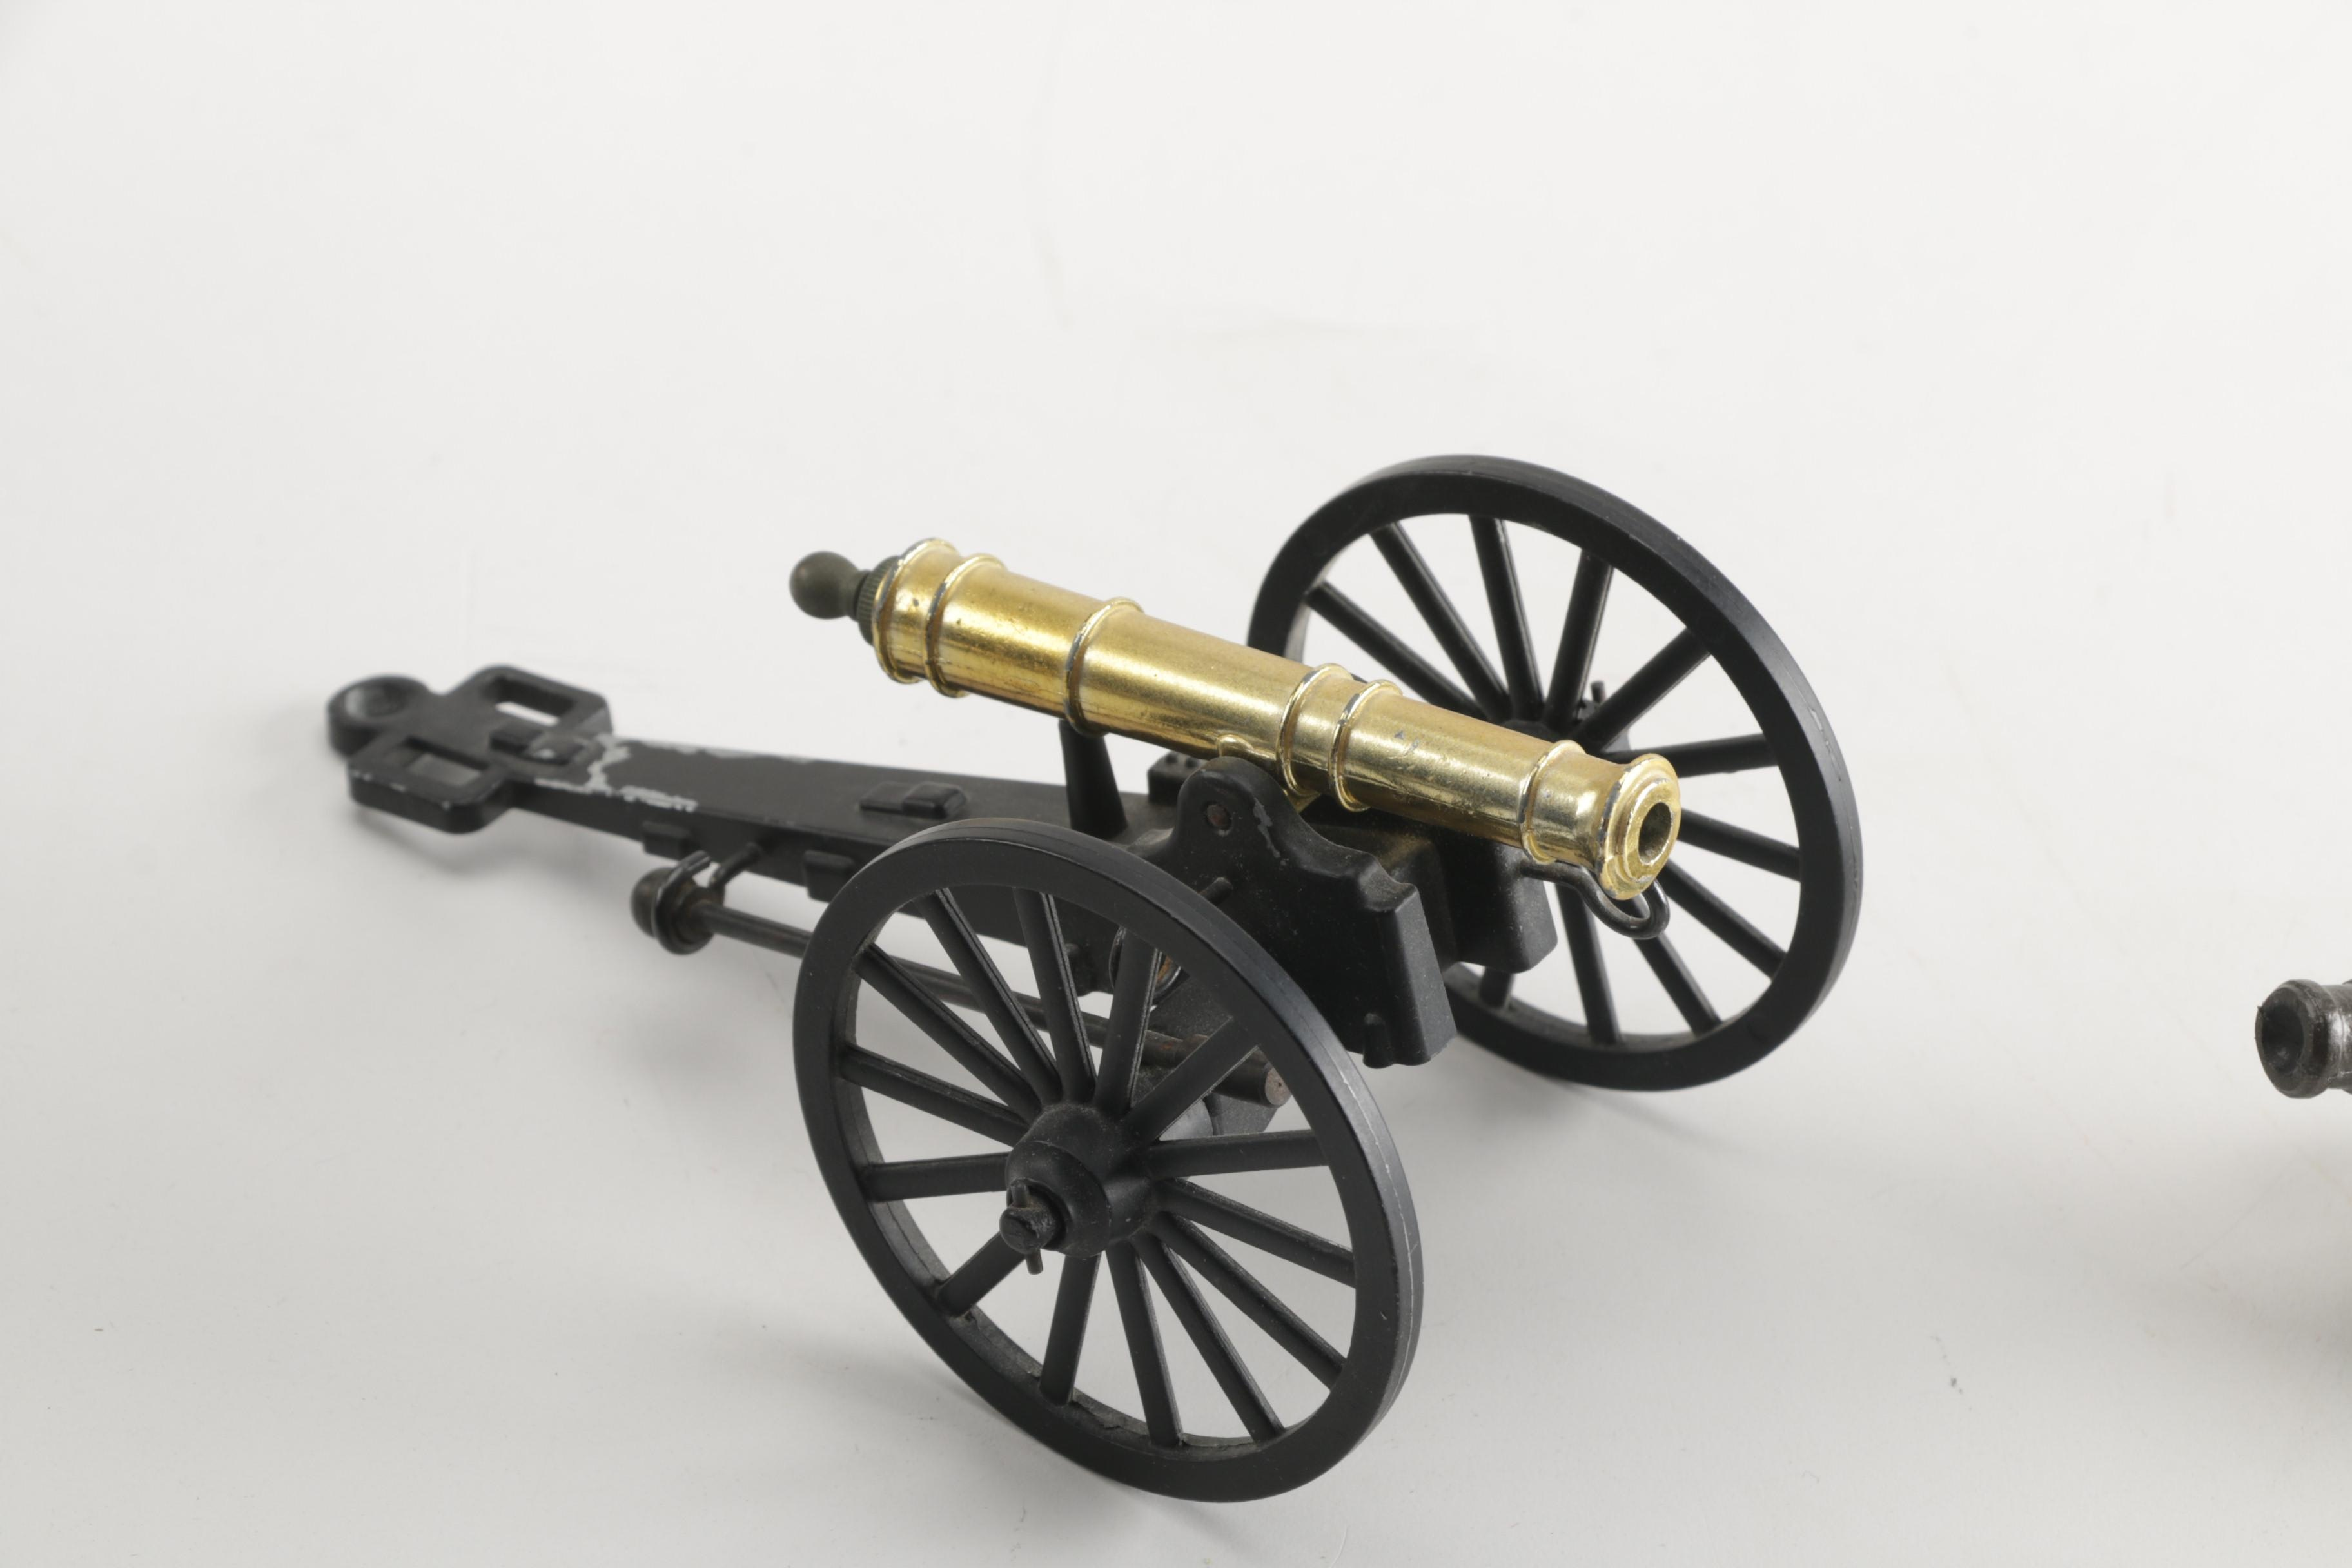 Miniature Cannon Replicas With Cannonballs Ebth